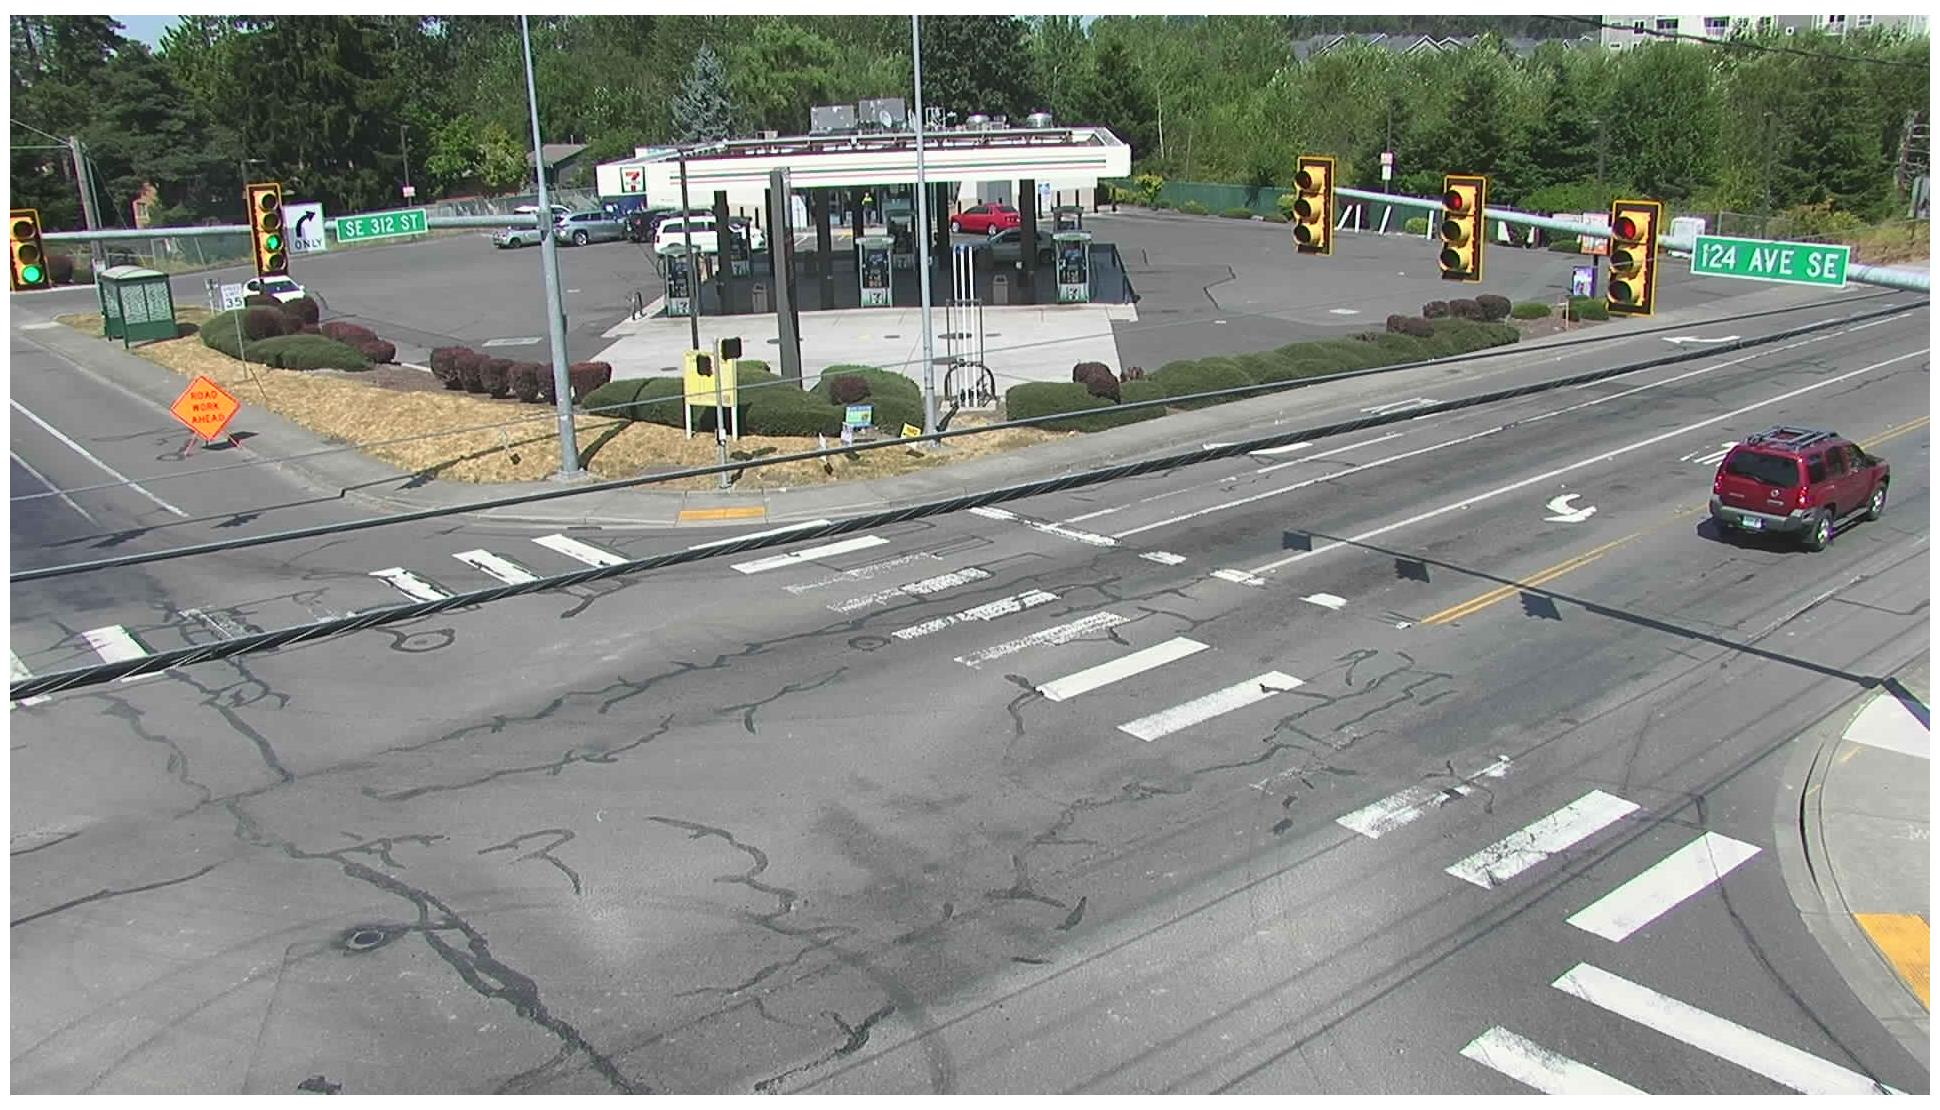 SE 312th ST and 124th AVE SE